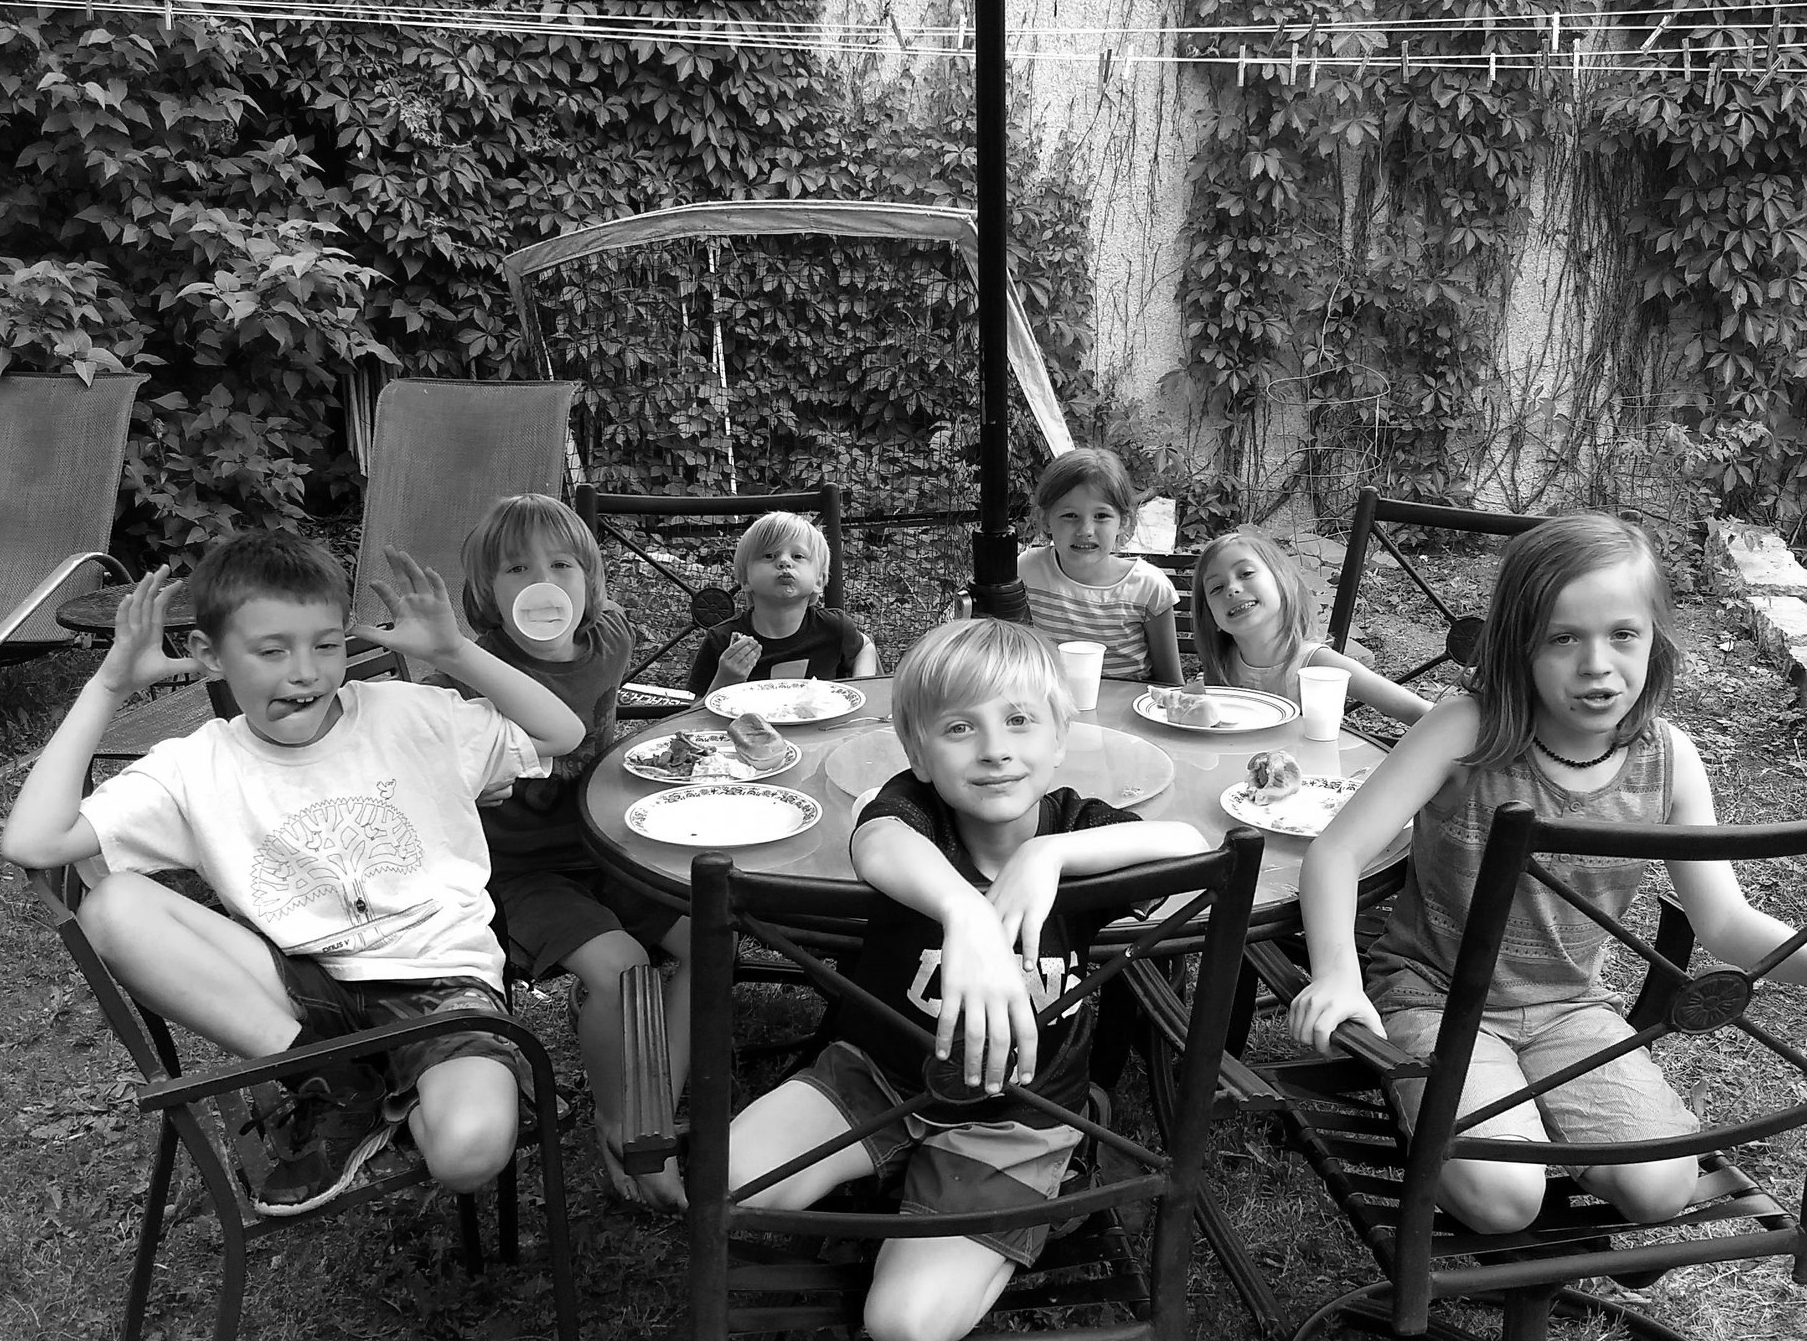 Friday night dinner outside. The community kids had the right idea, sitting under the patio umbrella as the sprinkling rain dampened the yard, but not our spirits!